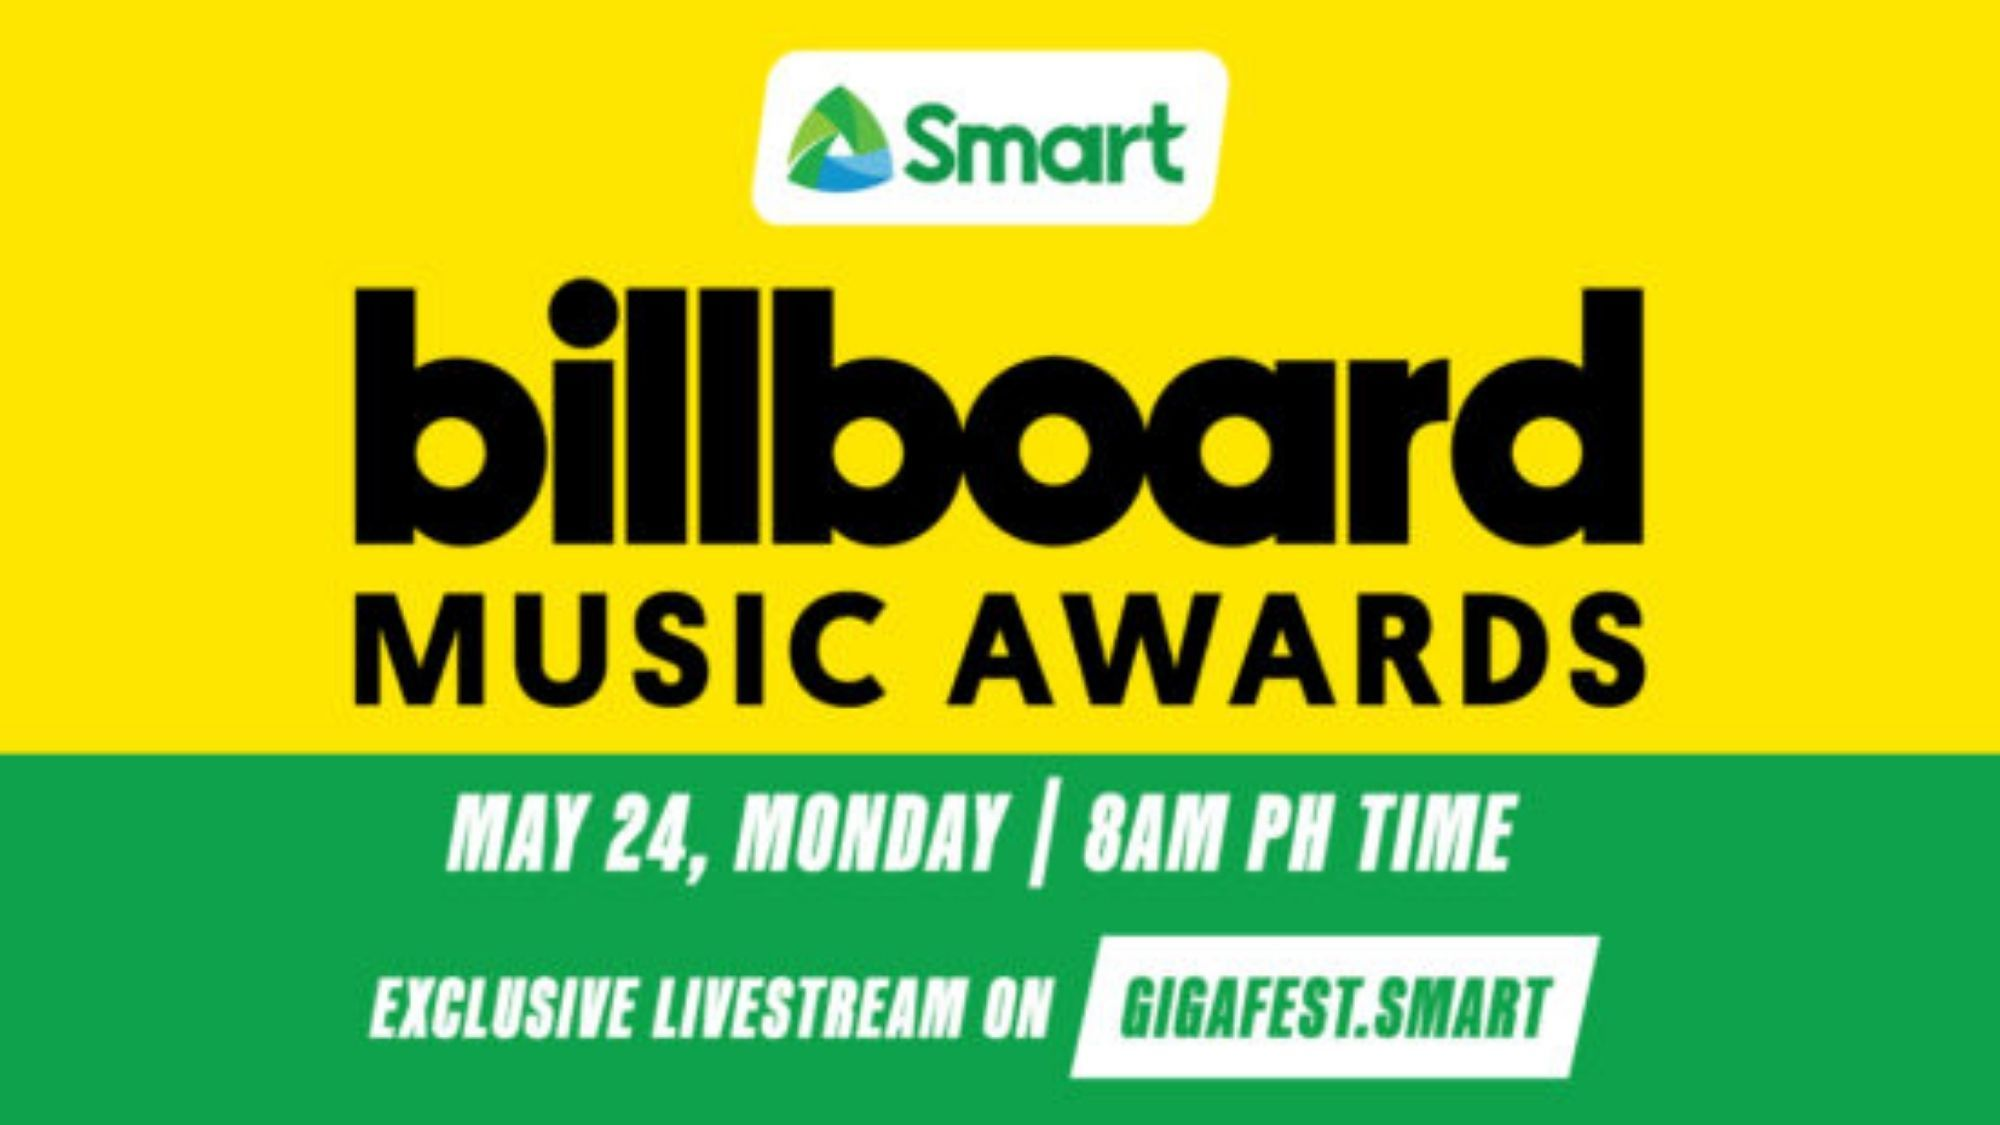 Smart to stream the 2021 Billboard Music Awards exclusively on gigafest.smart